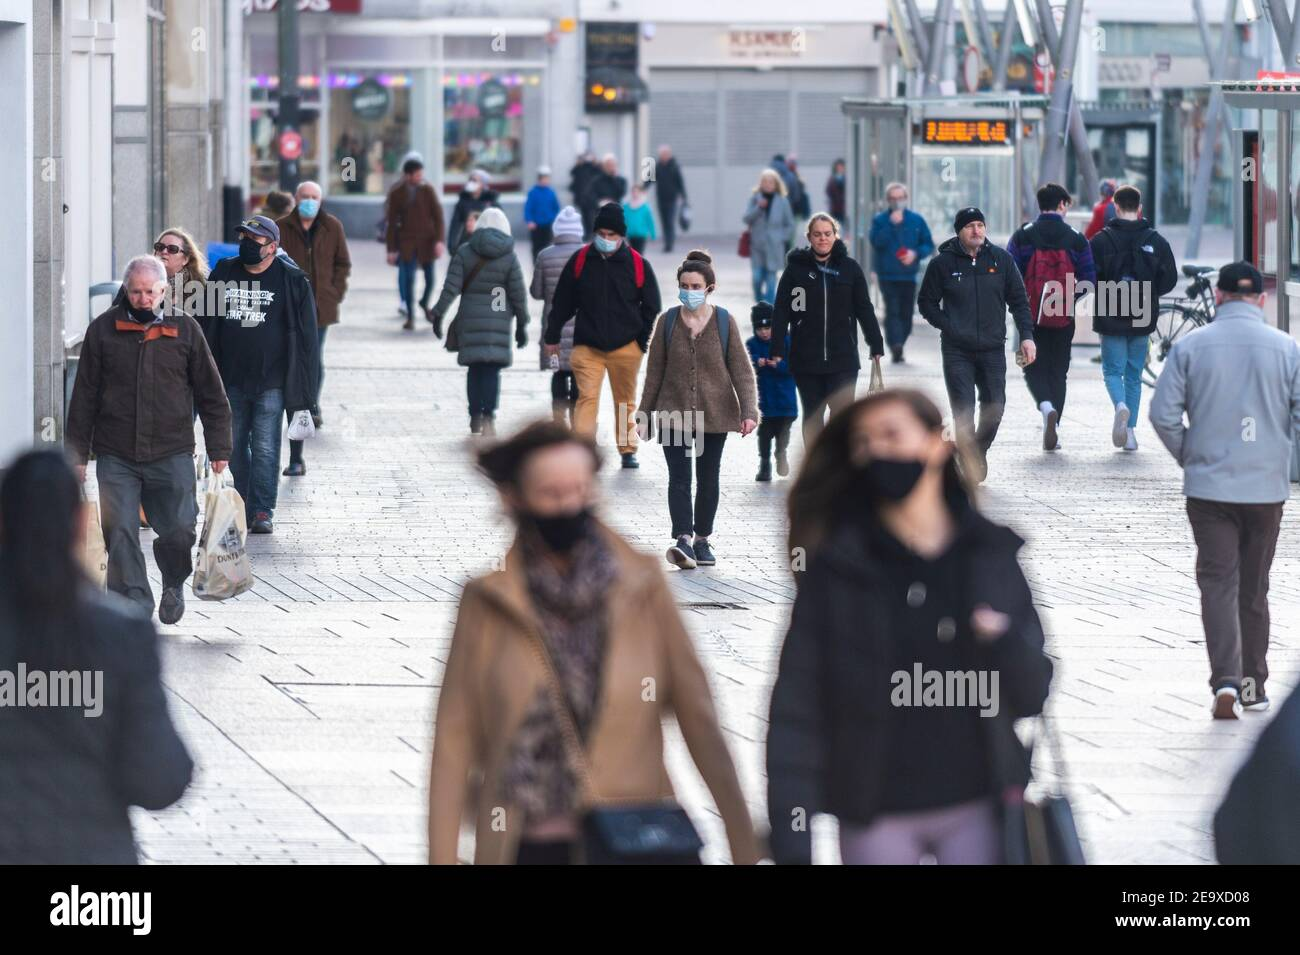 cork-ireland-6th-jan-2021-cork-city-was-busy-today-as-the-country-remains-under-level-5-covid-19-restrictions-credit-ag-newsalamy-live-news-2E9XD08.jpg